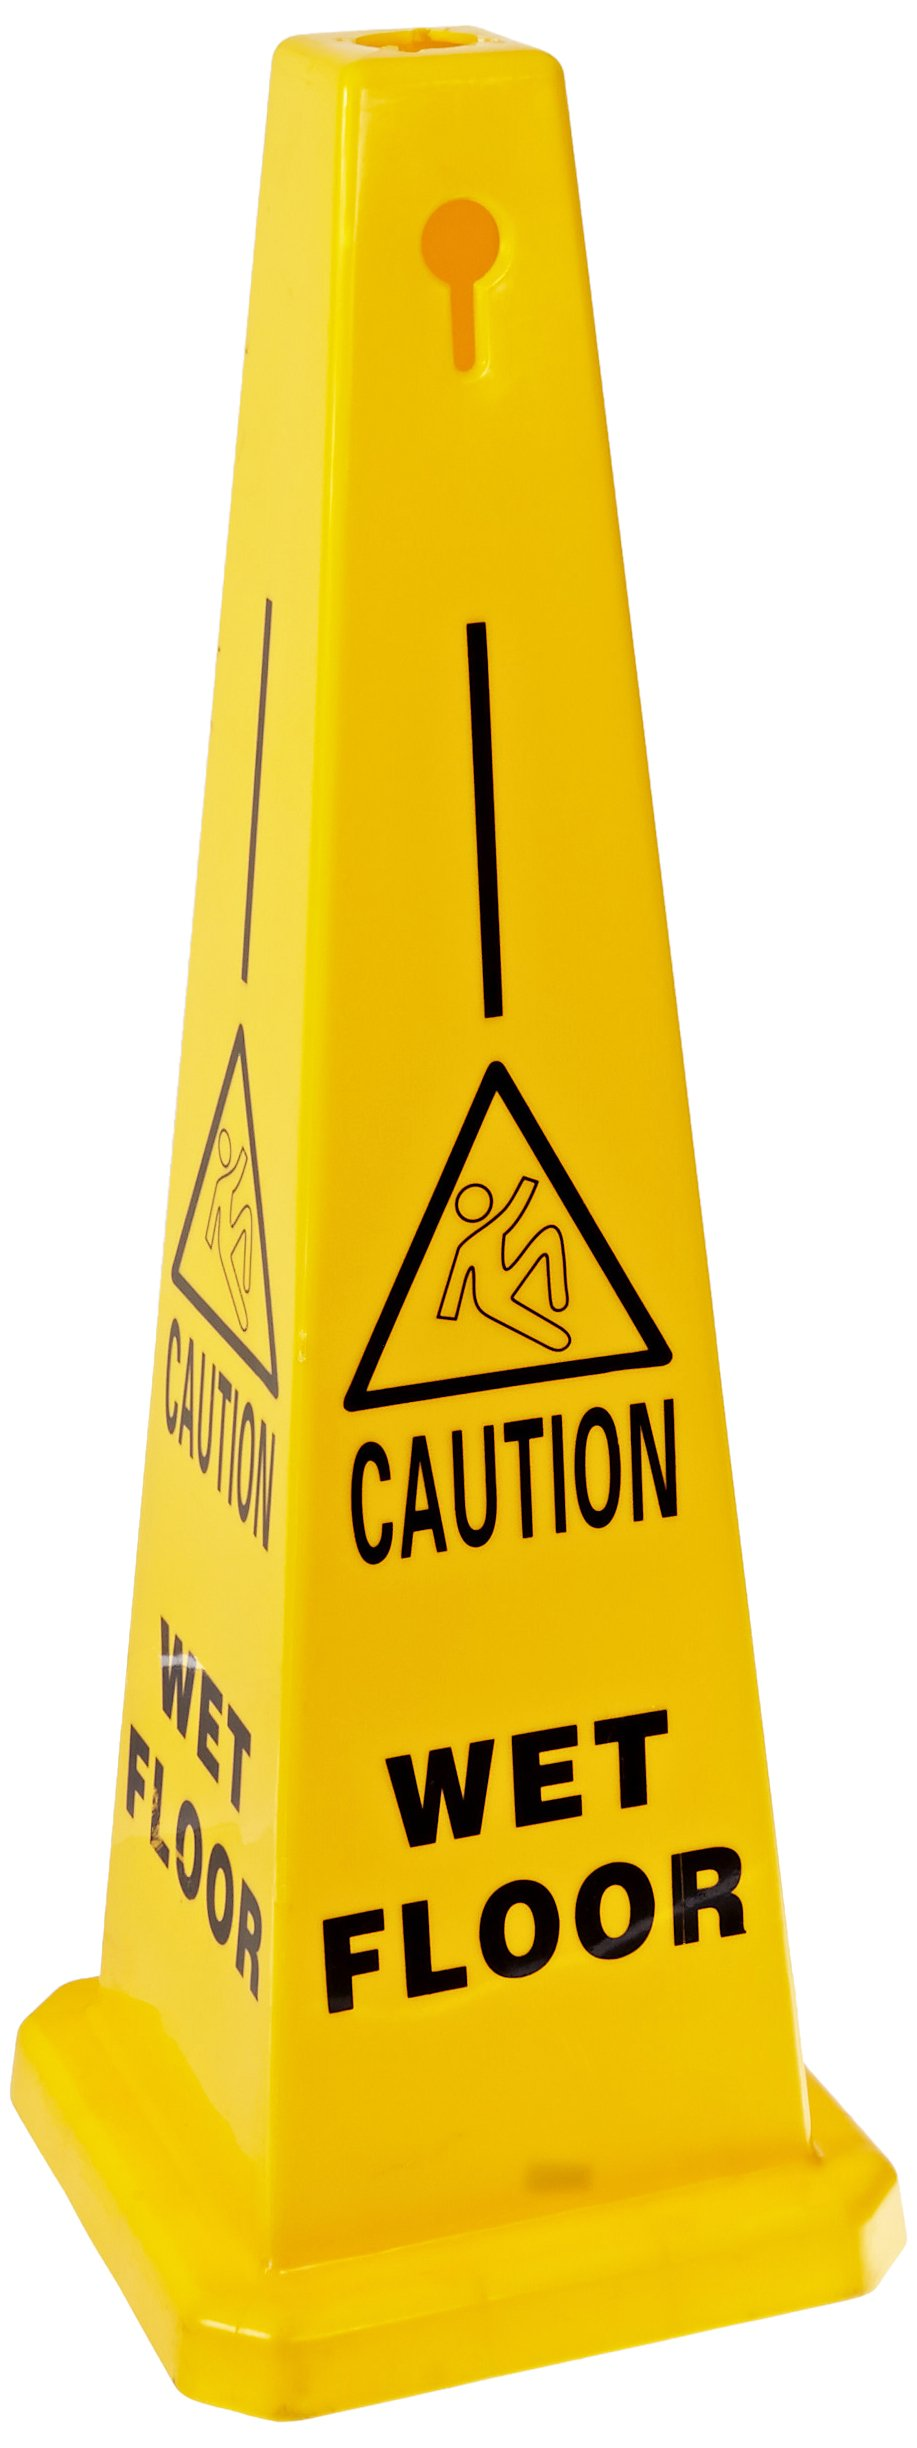 Brady 77202 35'' Height, Black And Red On Yellow Color Bradycone Warning System, Legend''Wet Floor''